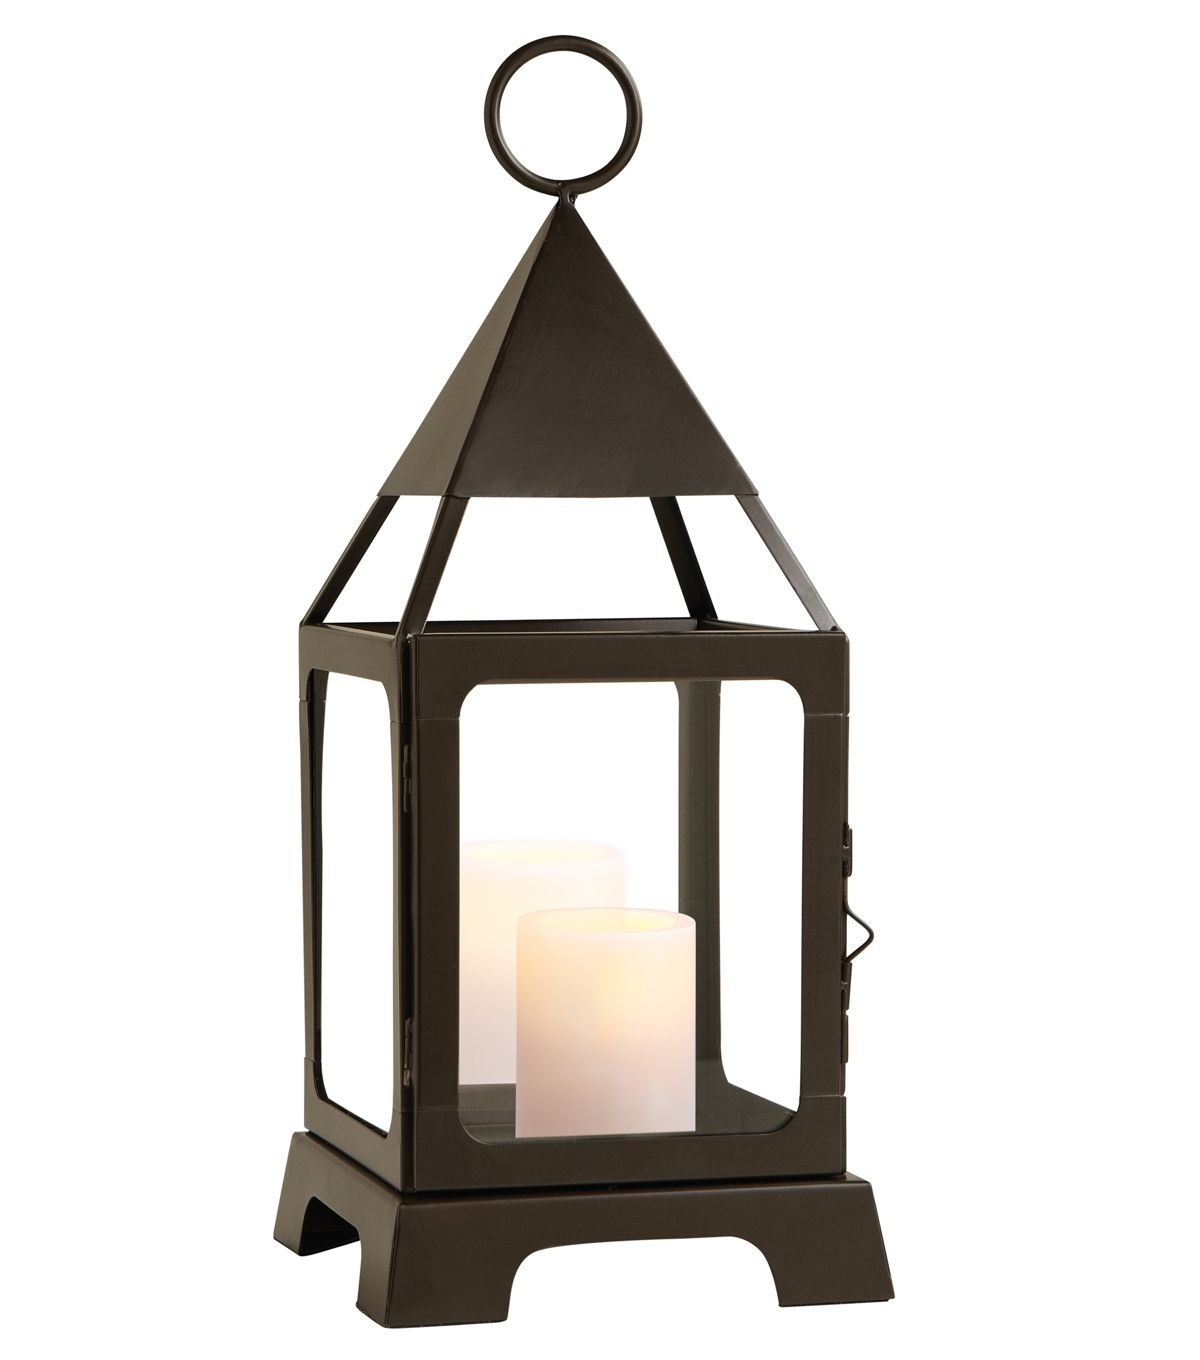 Well Known Medium Lantern Candle Holder Ledmedium Lantern Candle Holder Led With Joanns Outdoor Lanterns (View 20 of 20)